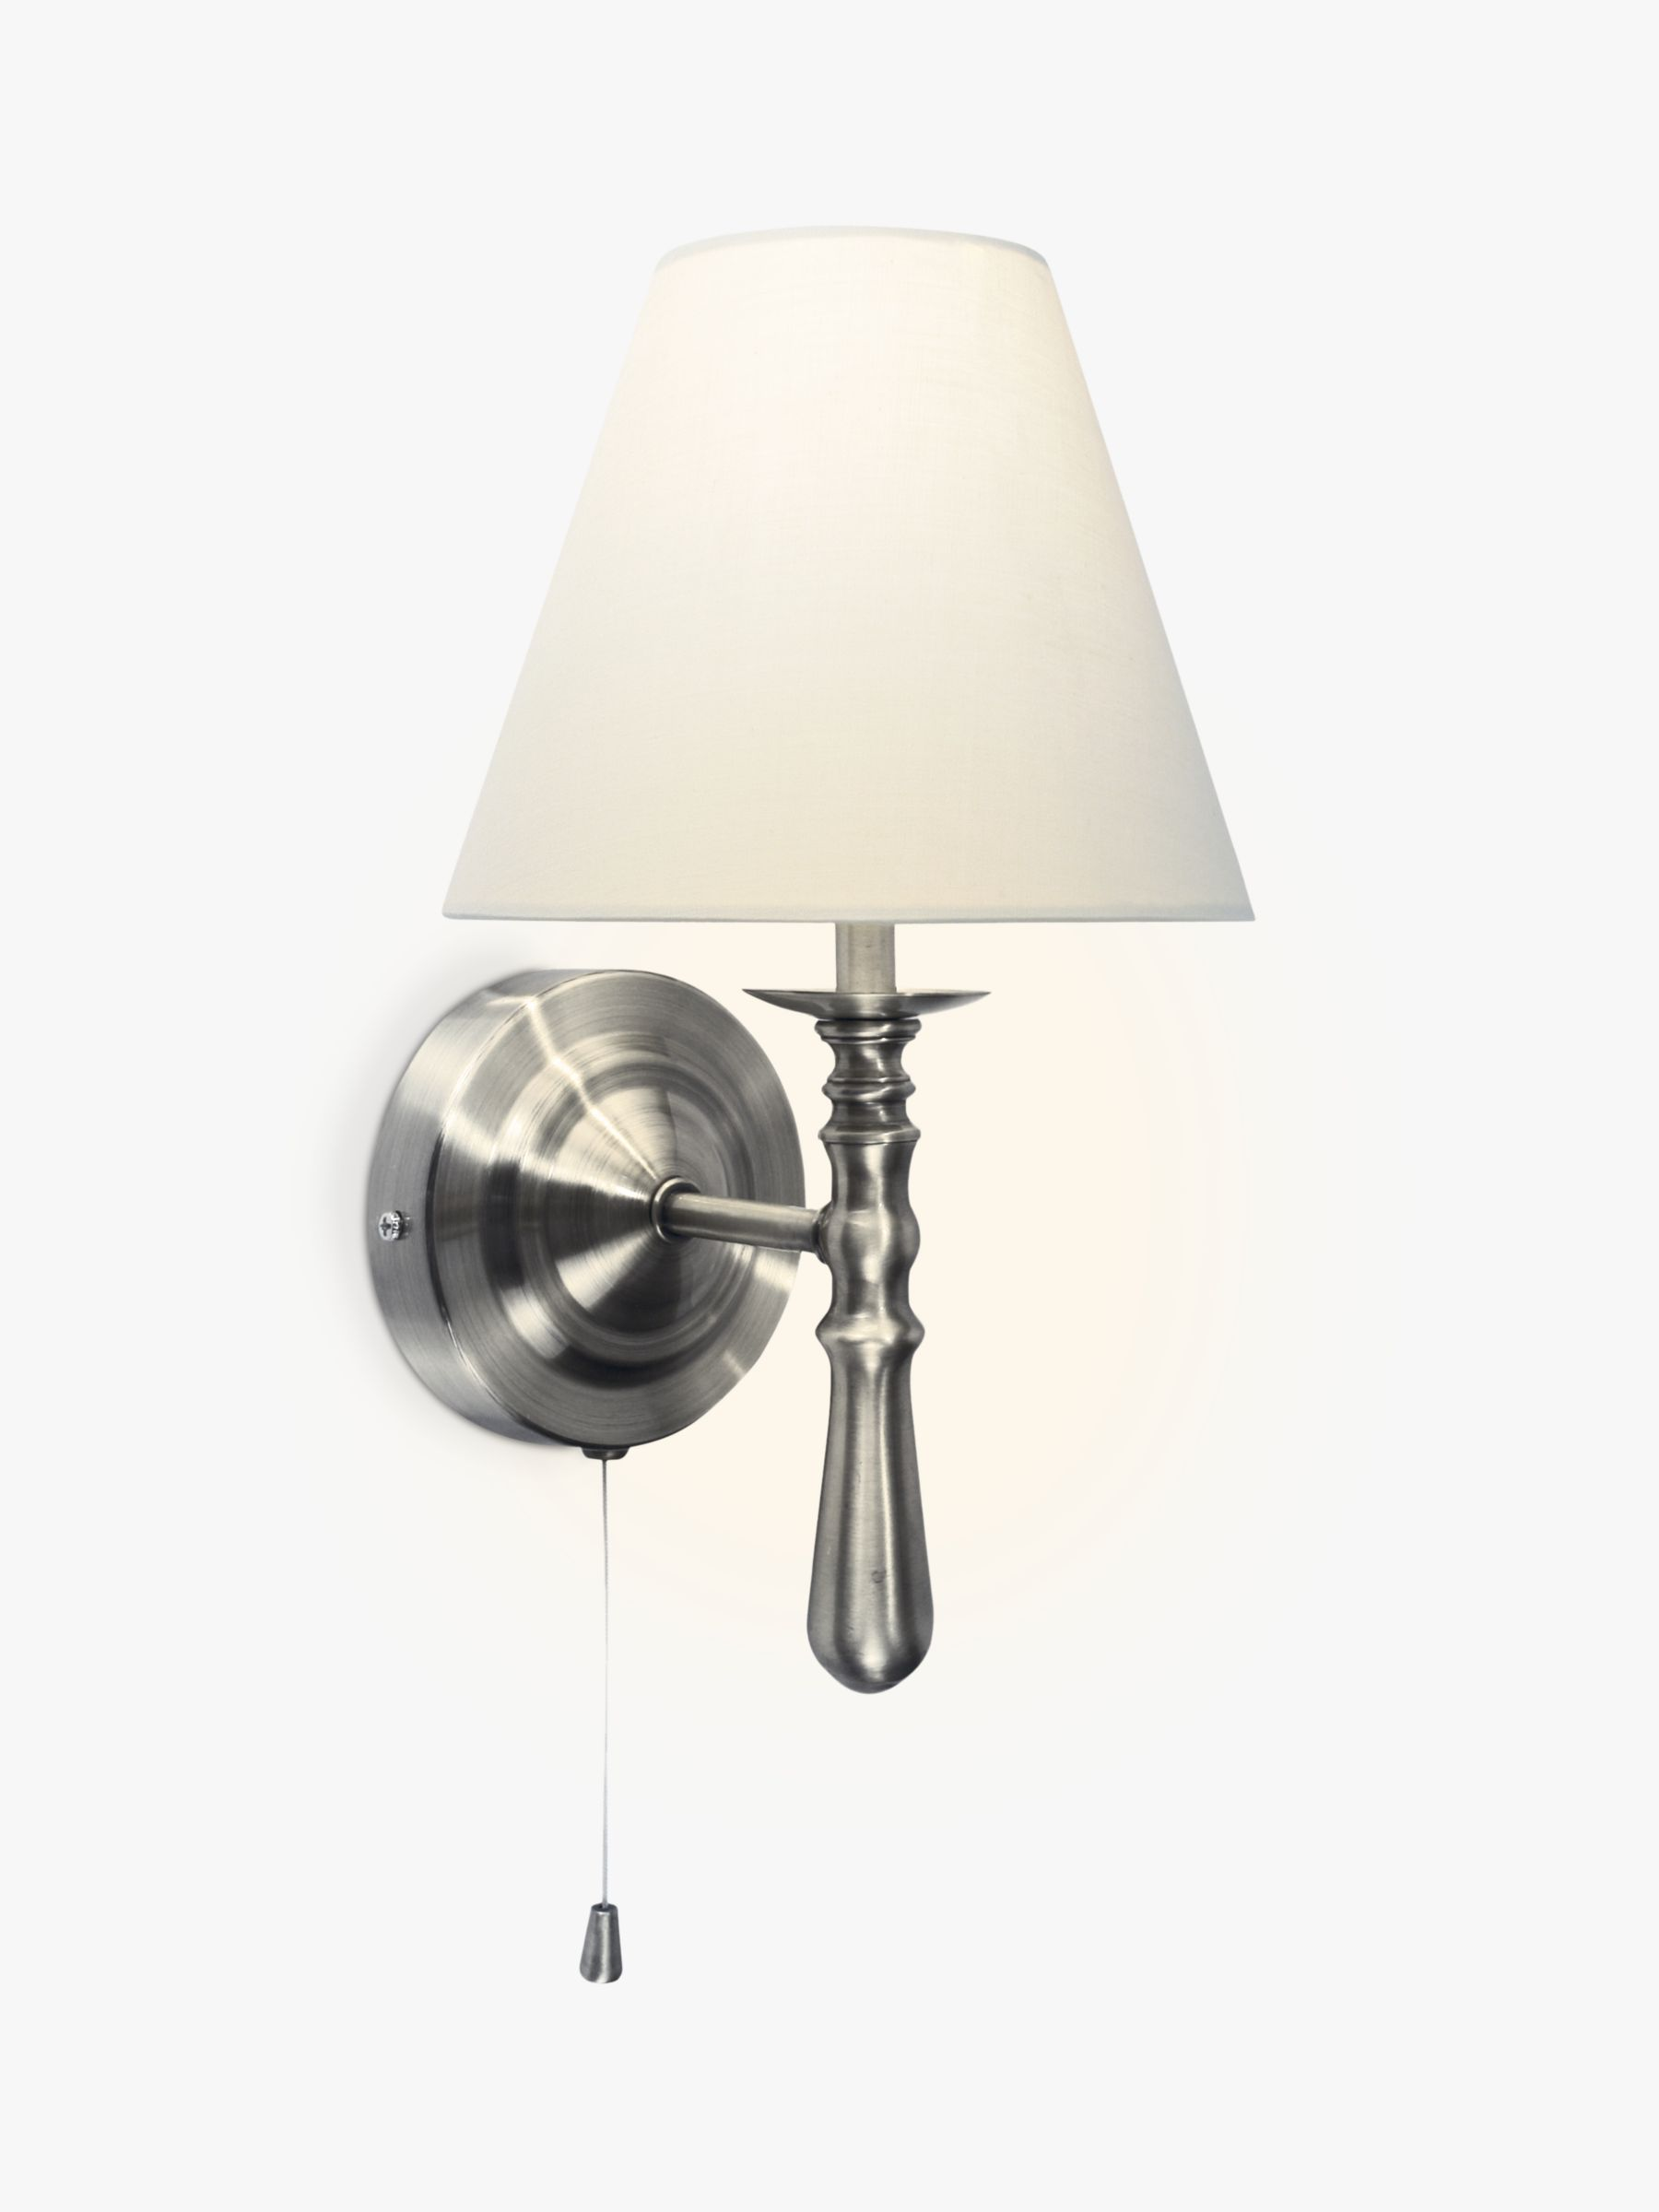 Wall Mounted Lamps John Lewis : Buy John Lewis Sloane Wall Light, Satin Nickel John Lewis